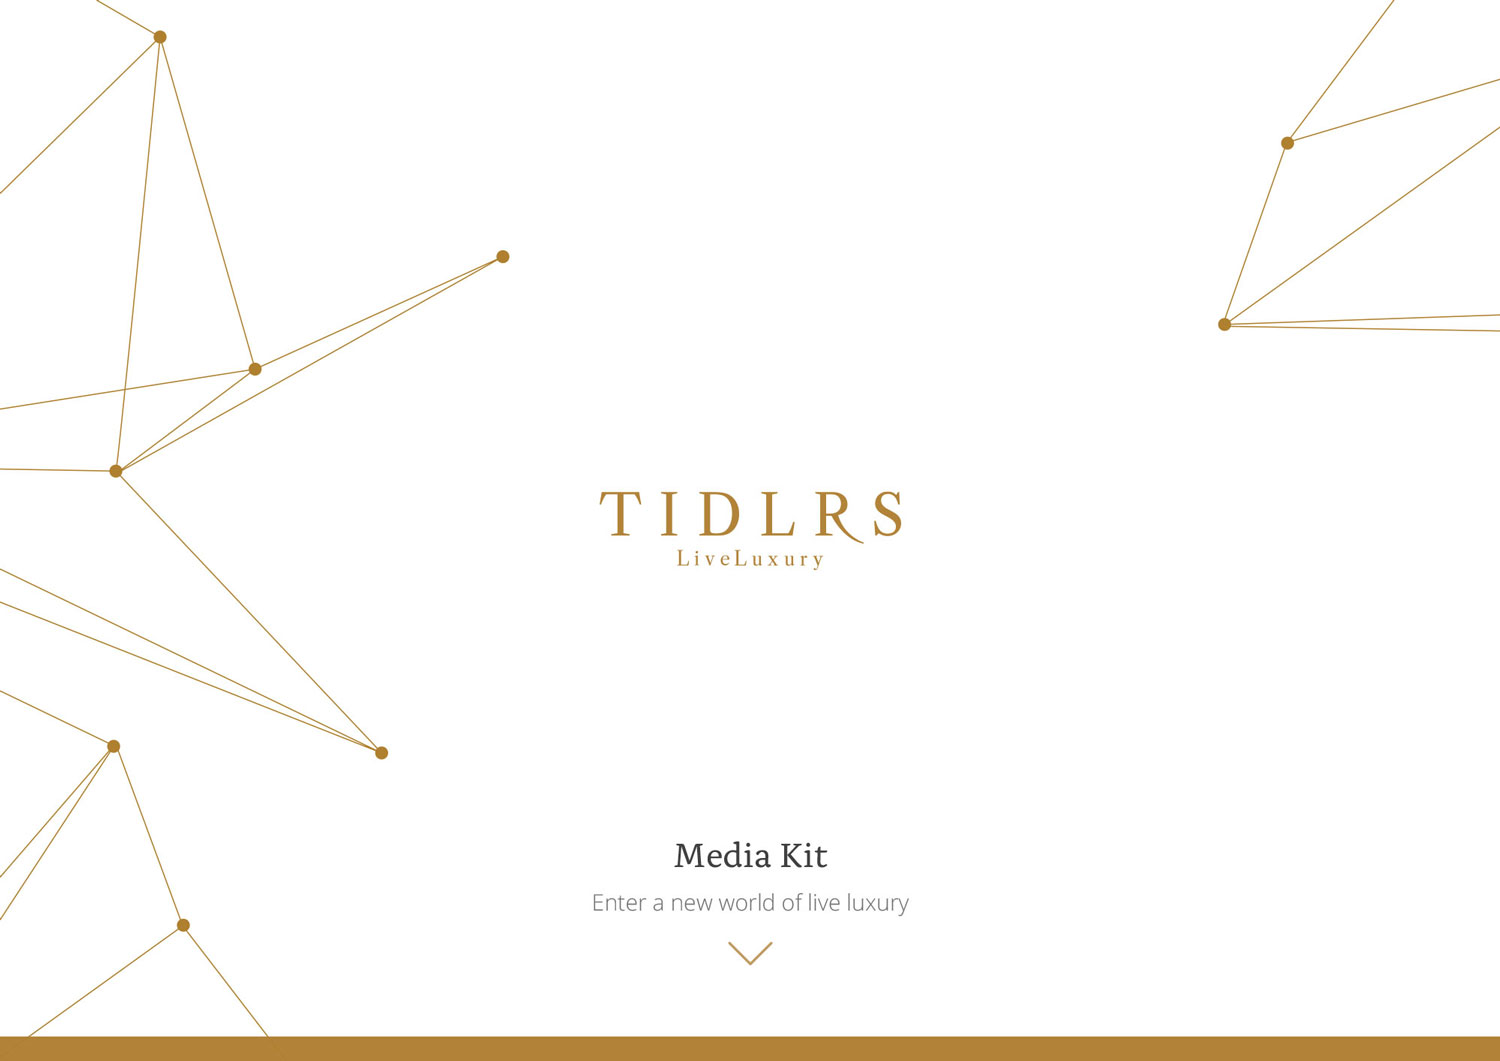 Tidlrs-–-Media-Kit-2018-1---Resized.jpg